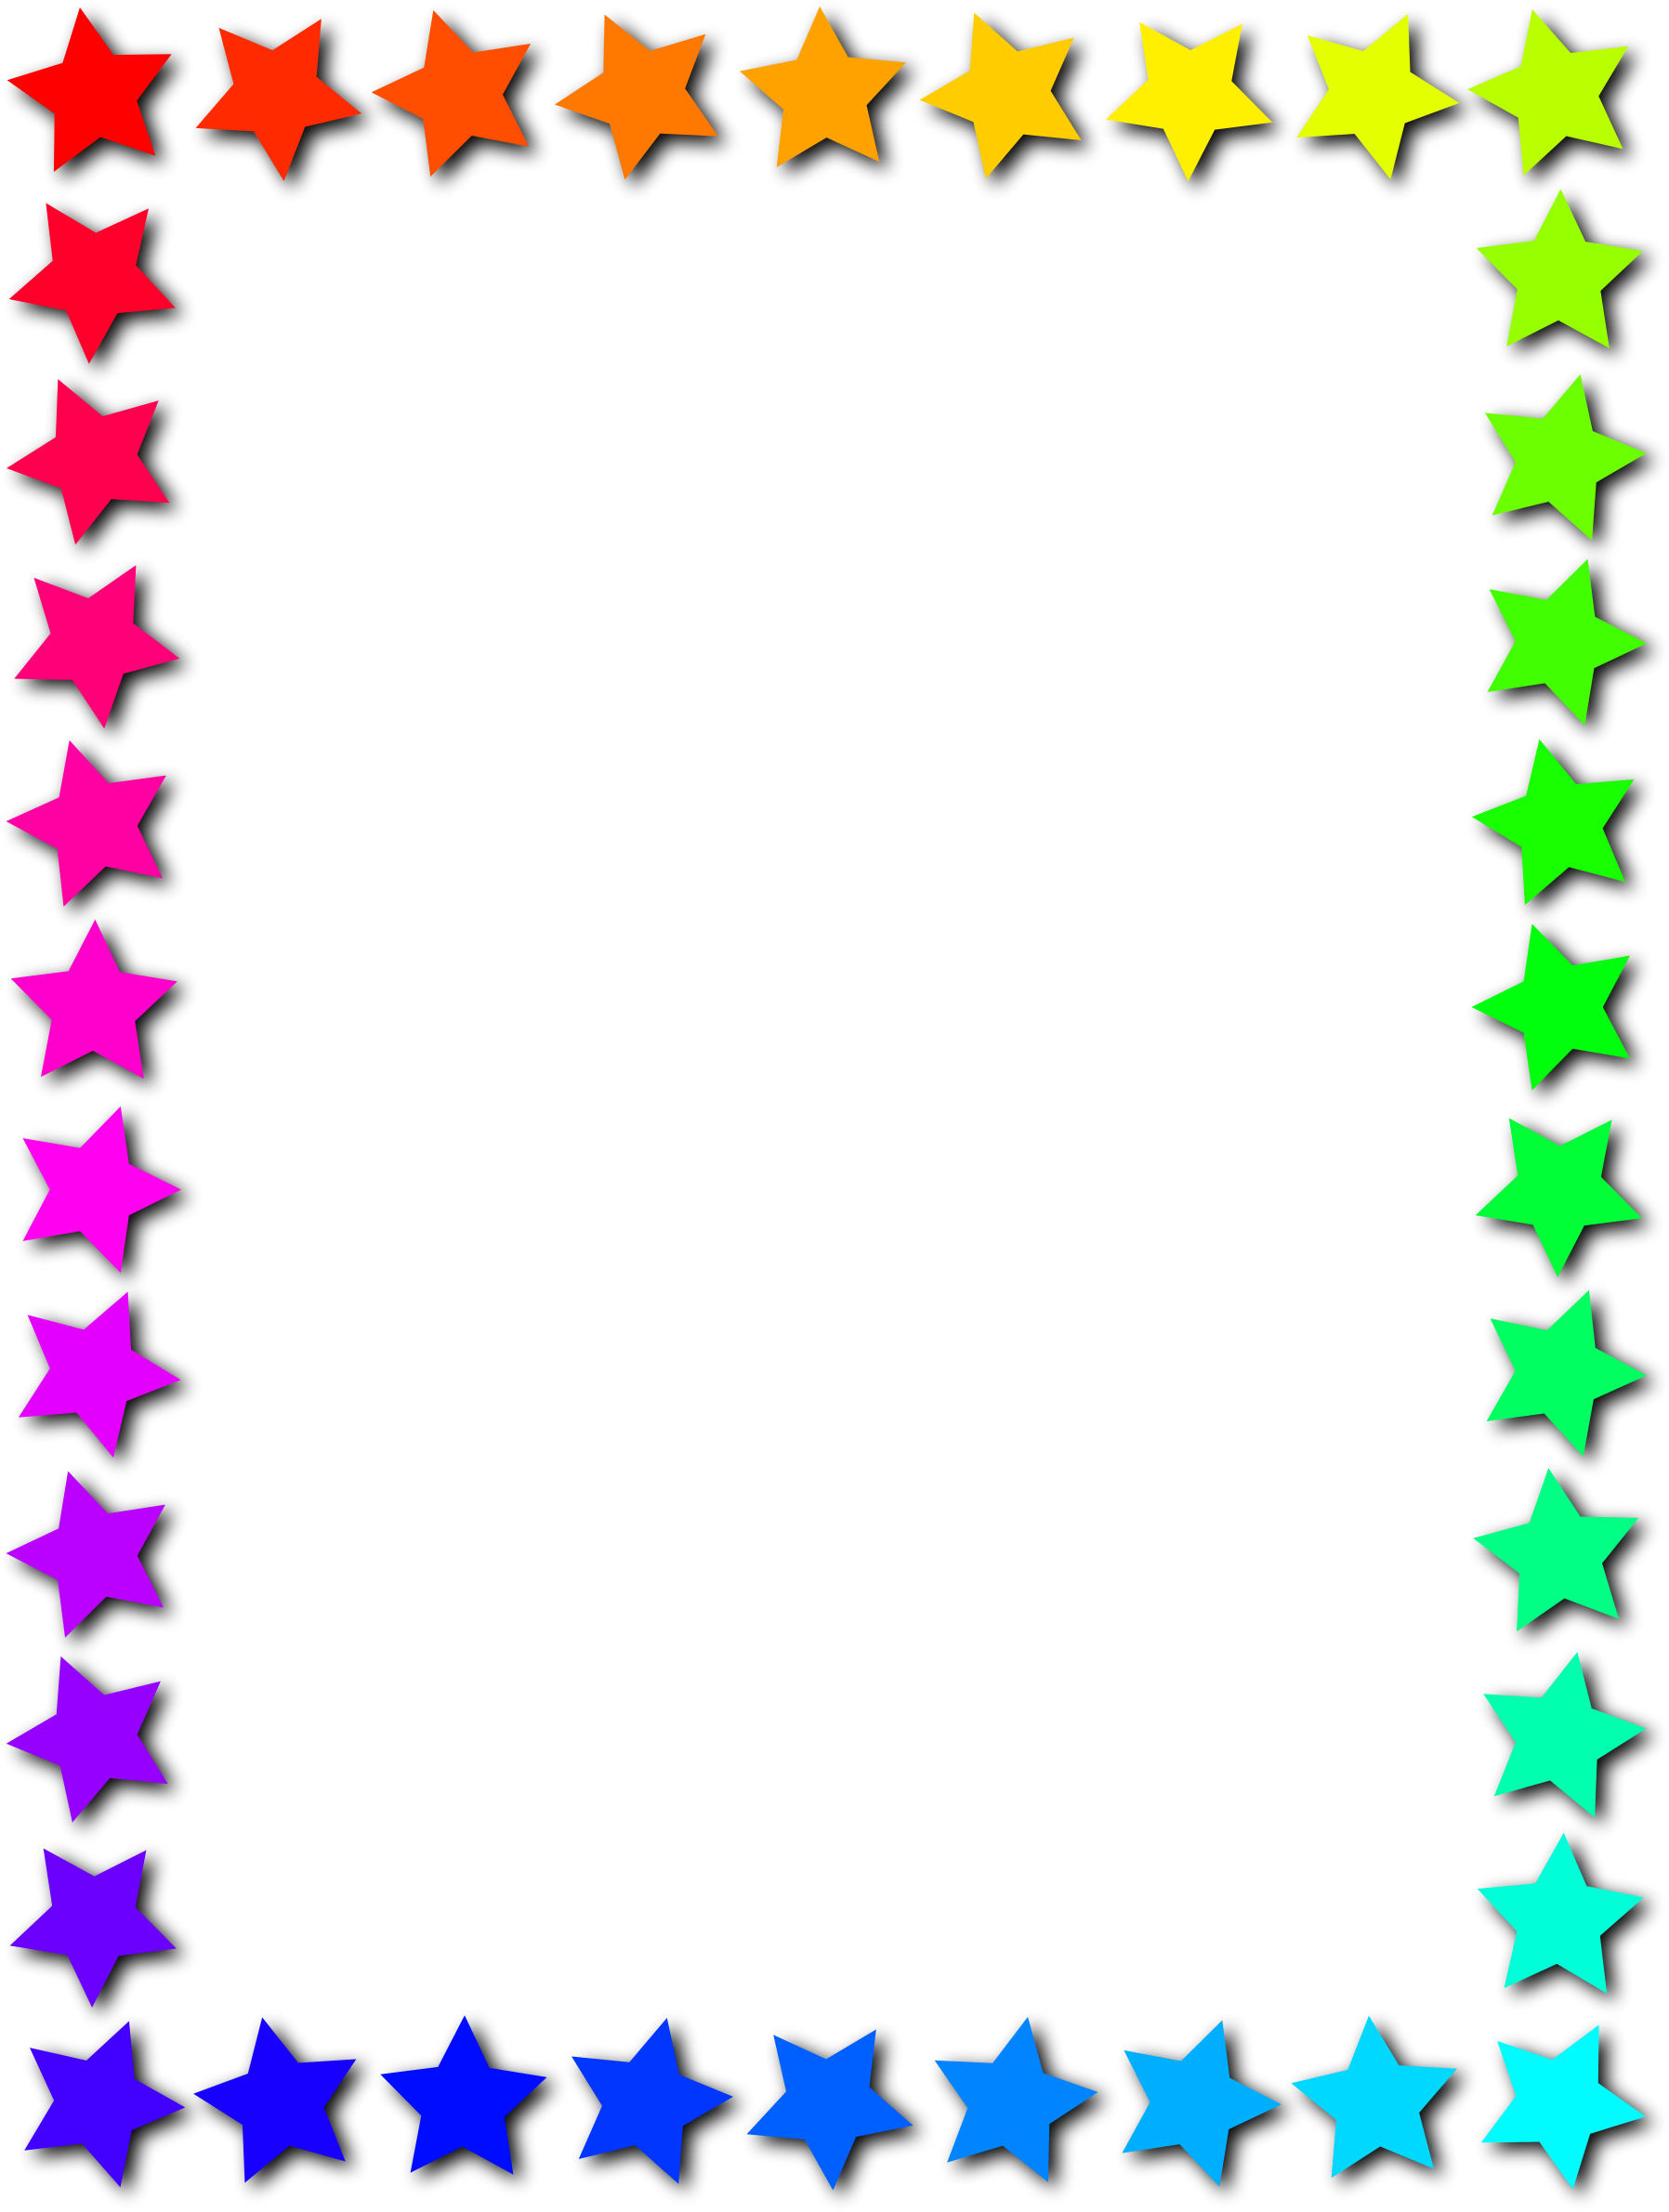 Star clipart picture frame. Big image png